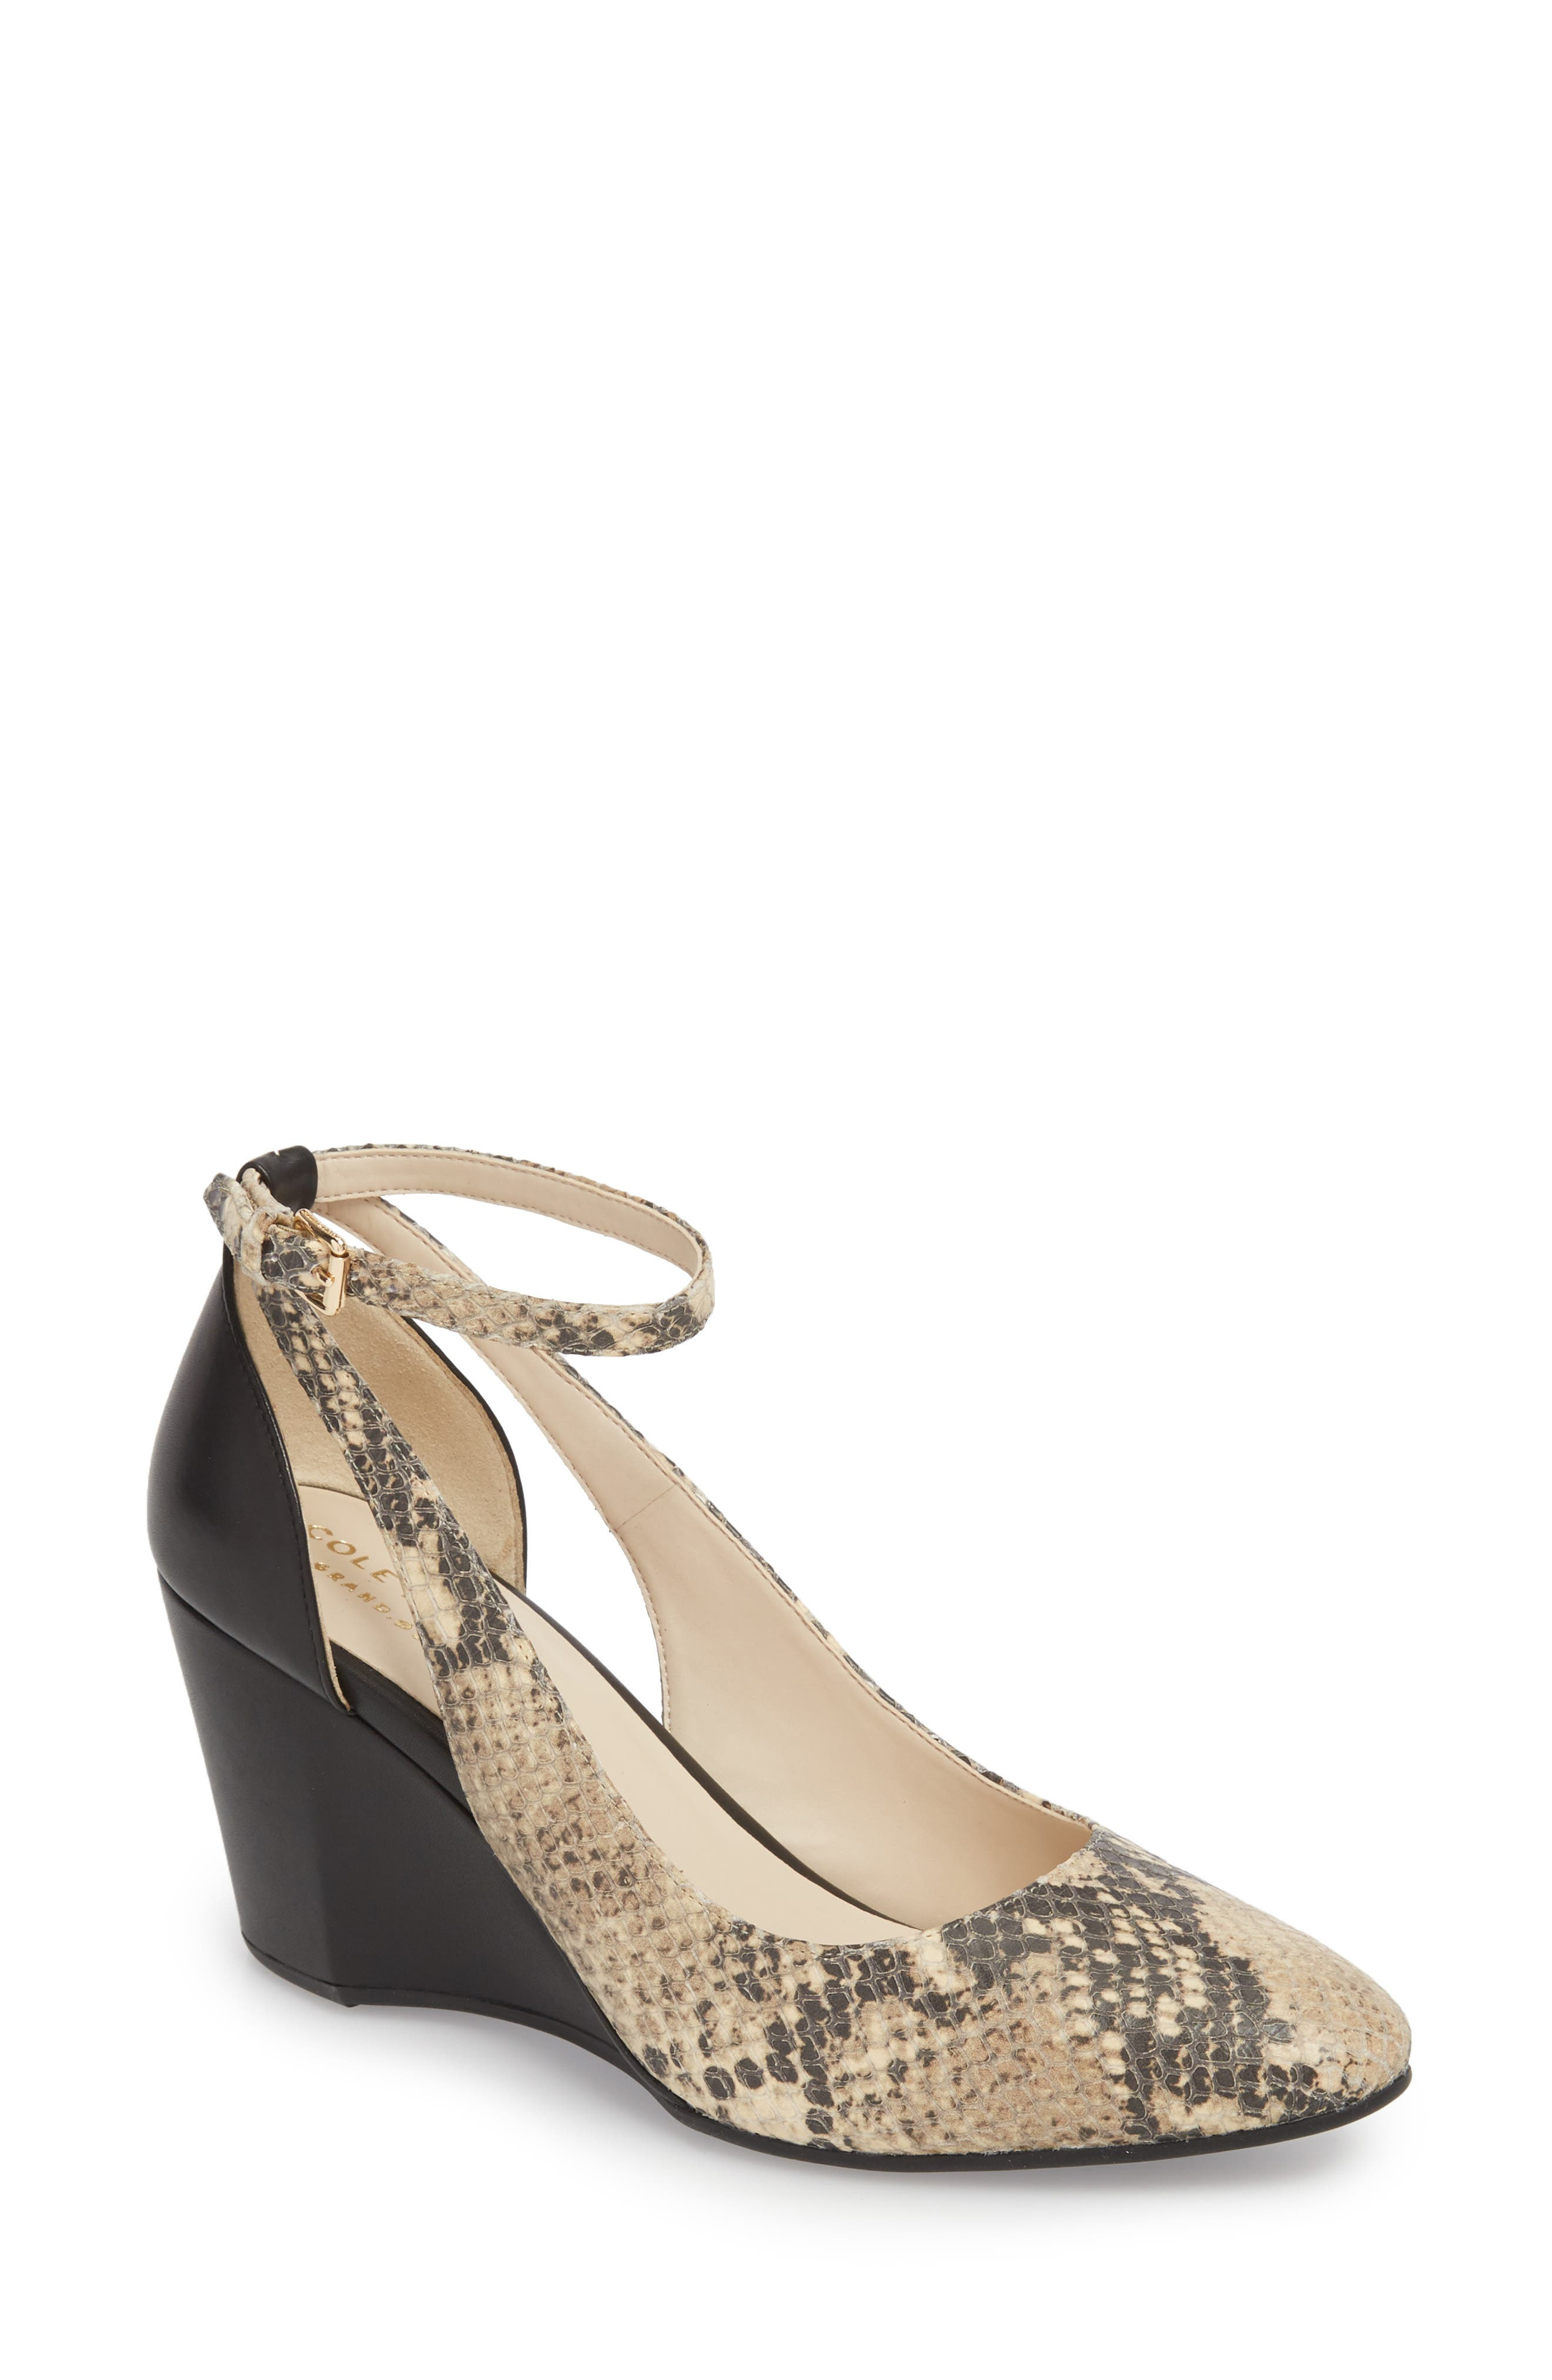 Lacey Cutout Wedge Pump,                             Main thumbnail 1, color,                             SNAKE PRINT LEATHER